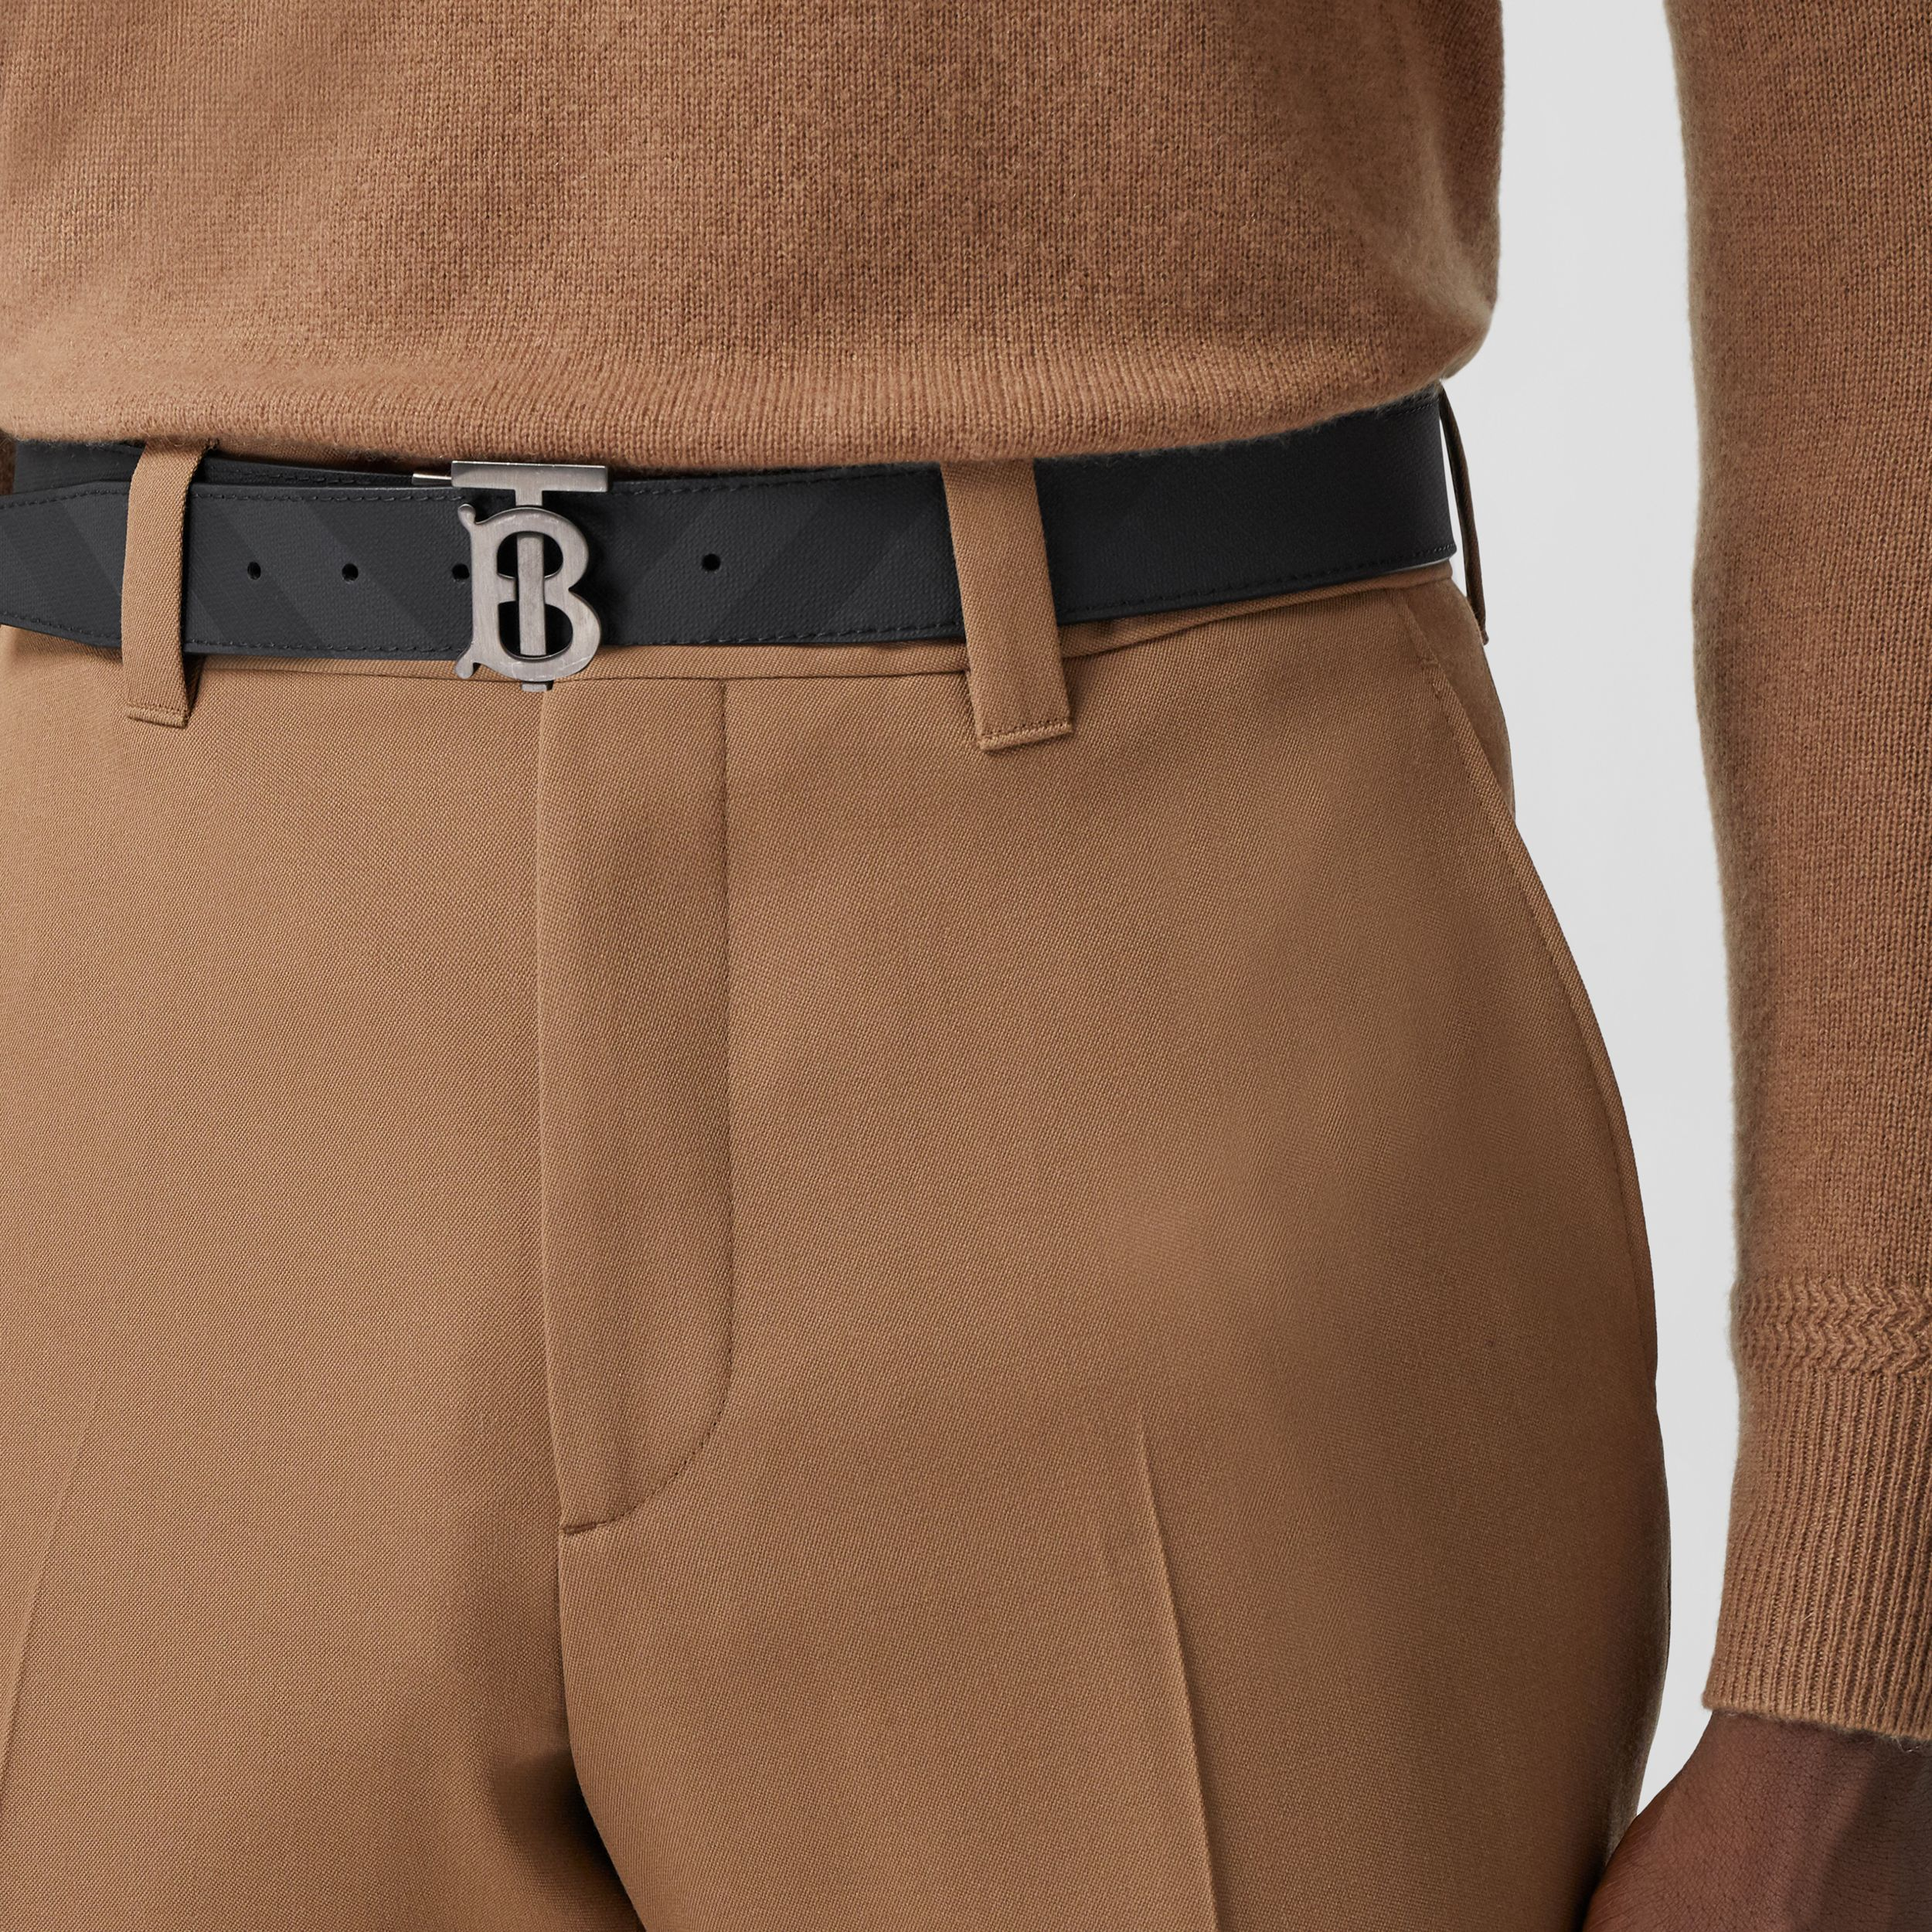 Reversible Monogram Motif London Check Belt in Dark Charcoal - Men | Burberry - 3